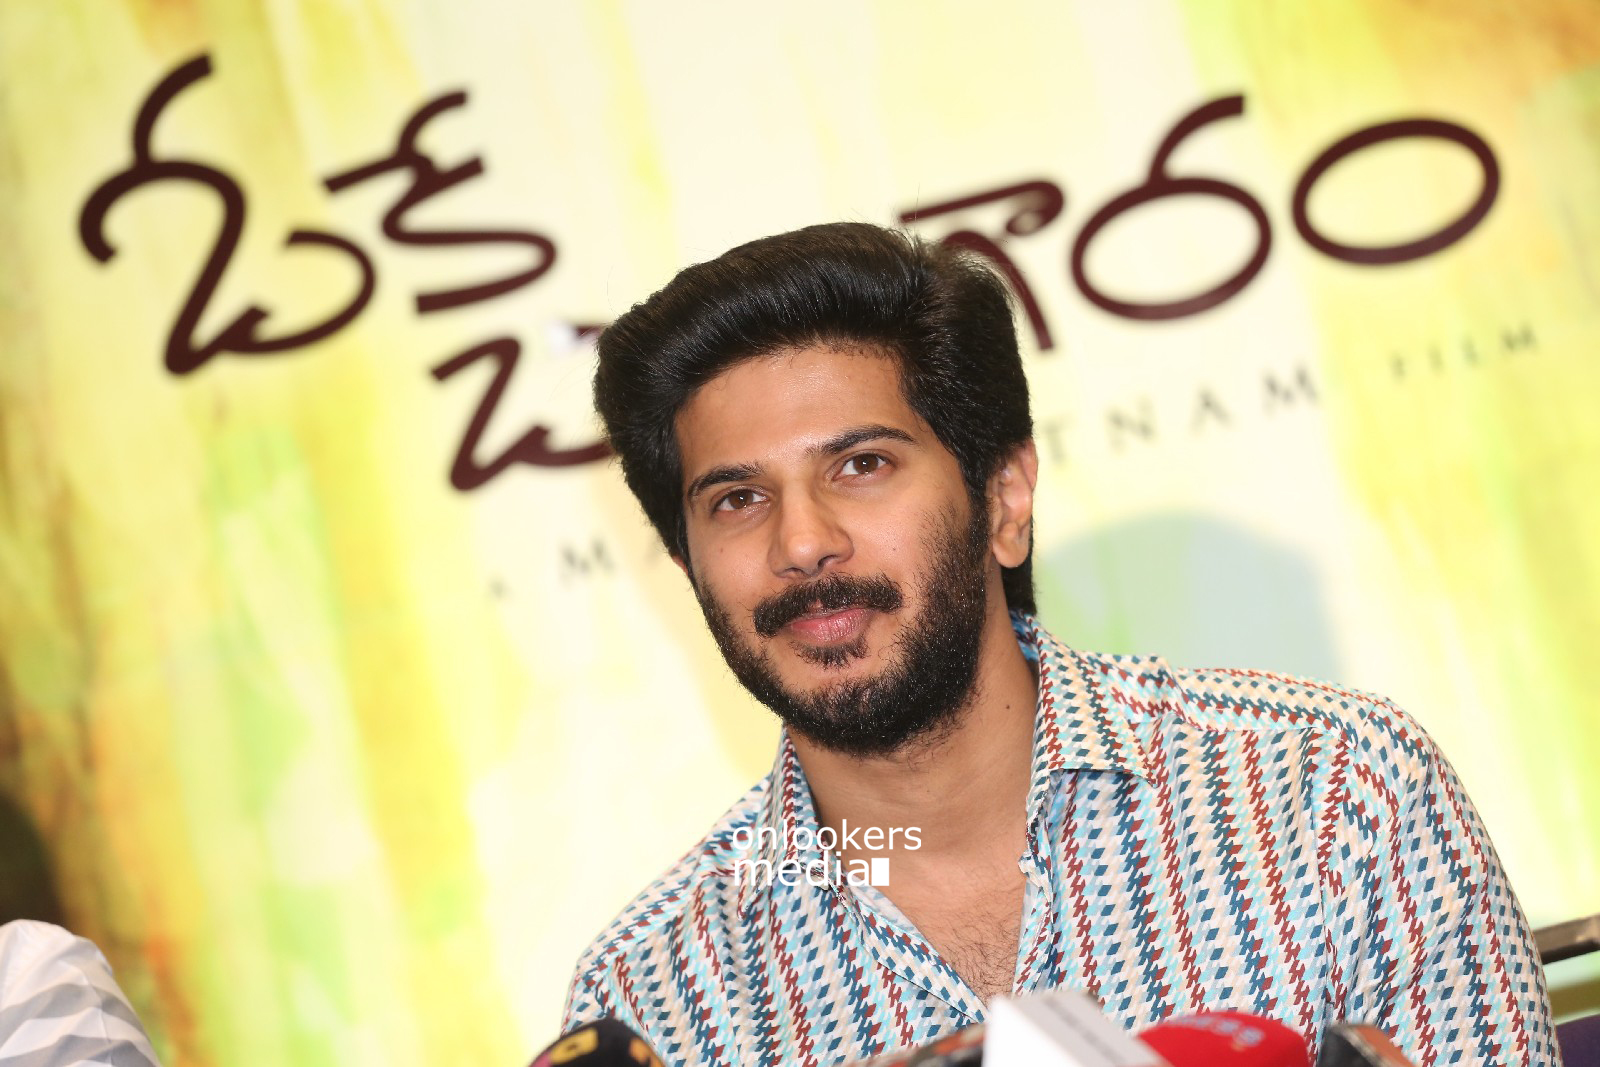 Dulquer Salmaan at OK Bangaram Promotional Event-OK Kanmani Stills-Onlookers Media